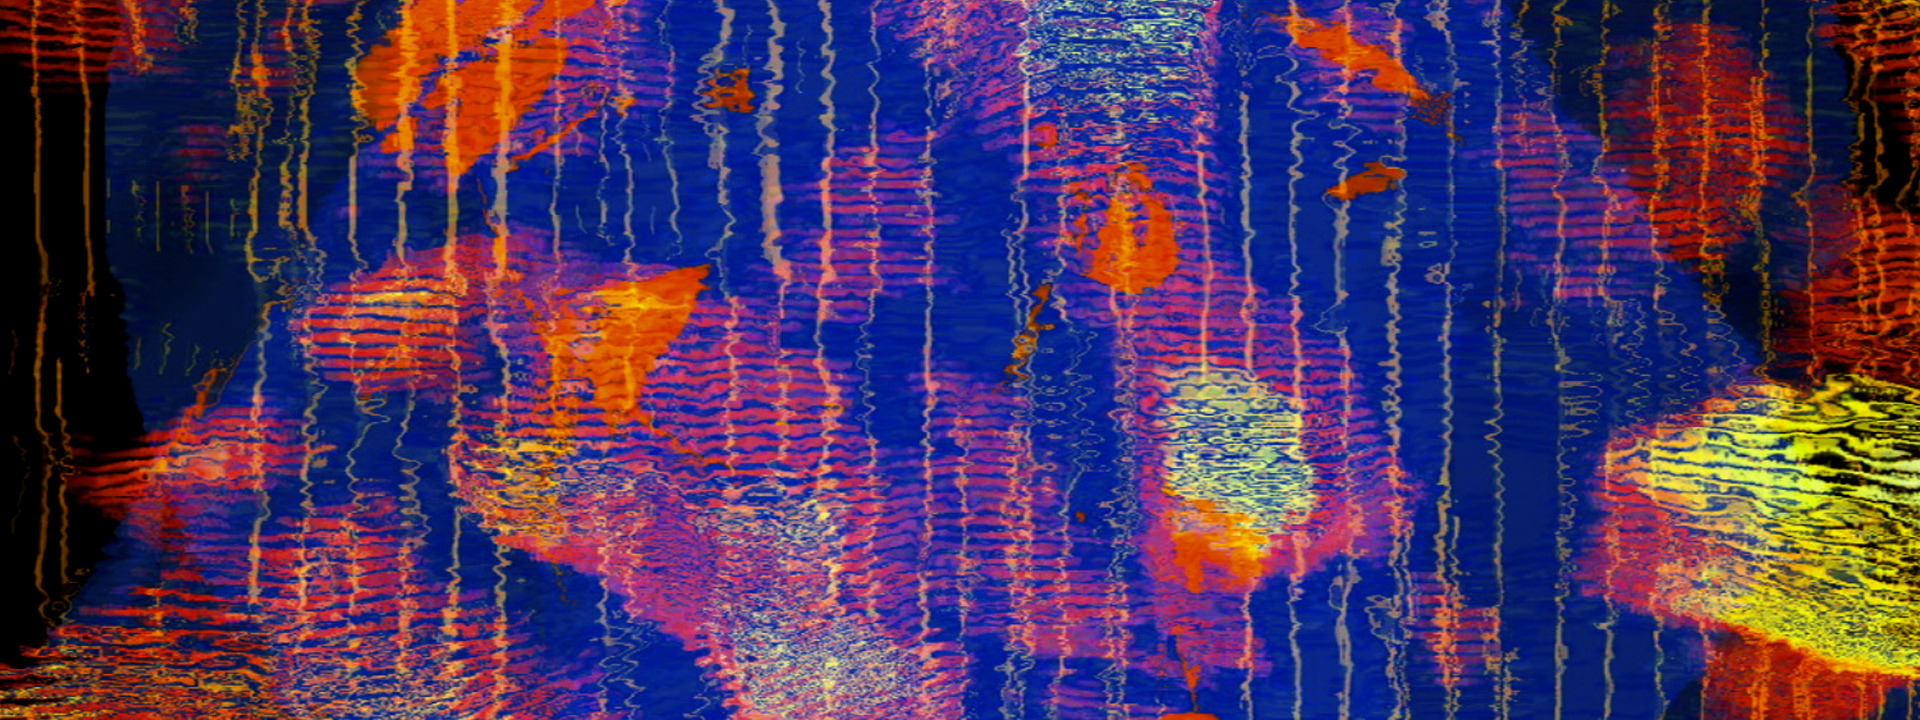 still from abstract video